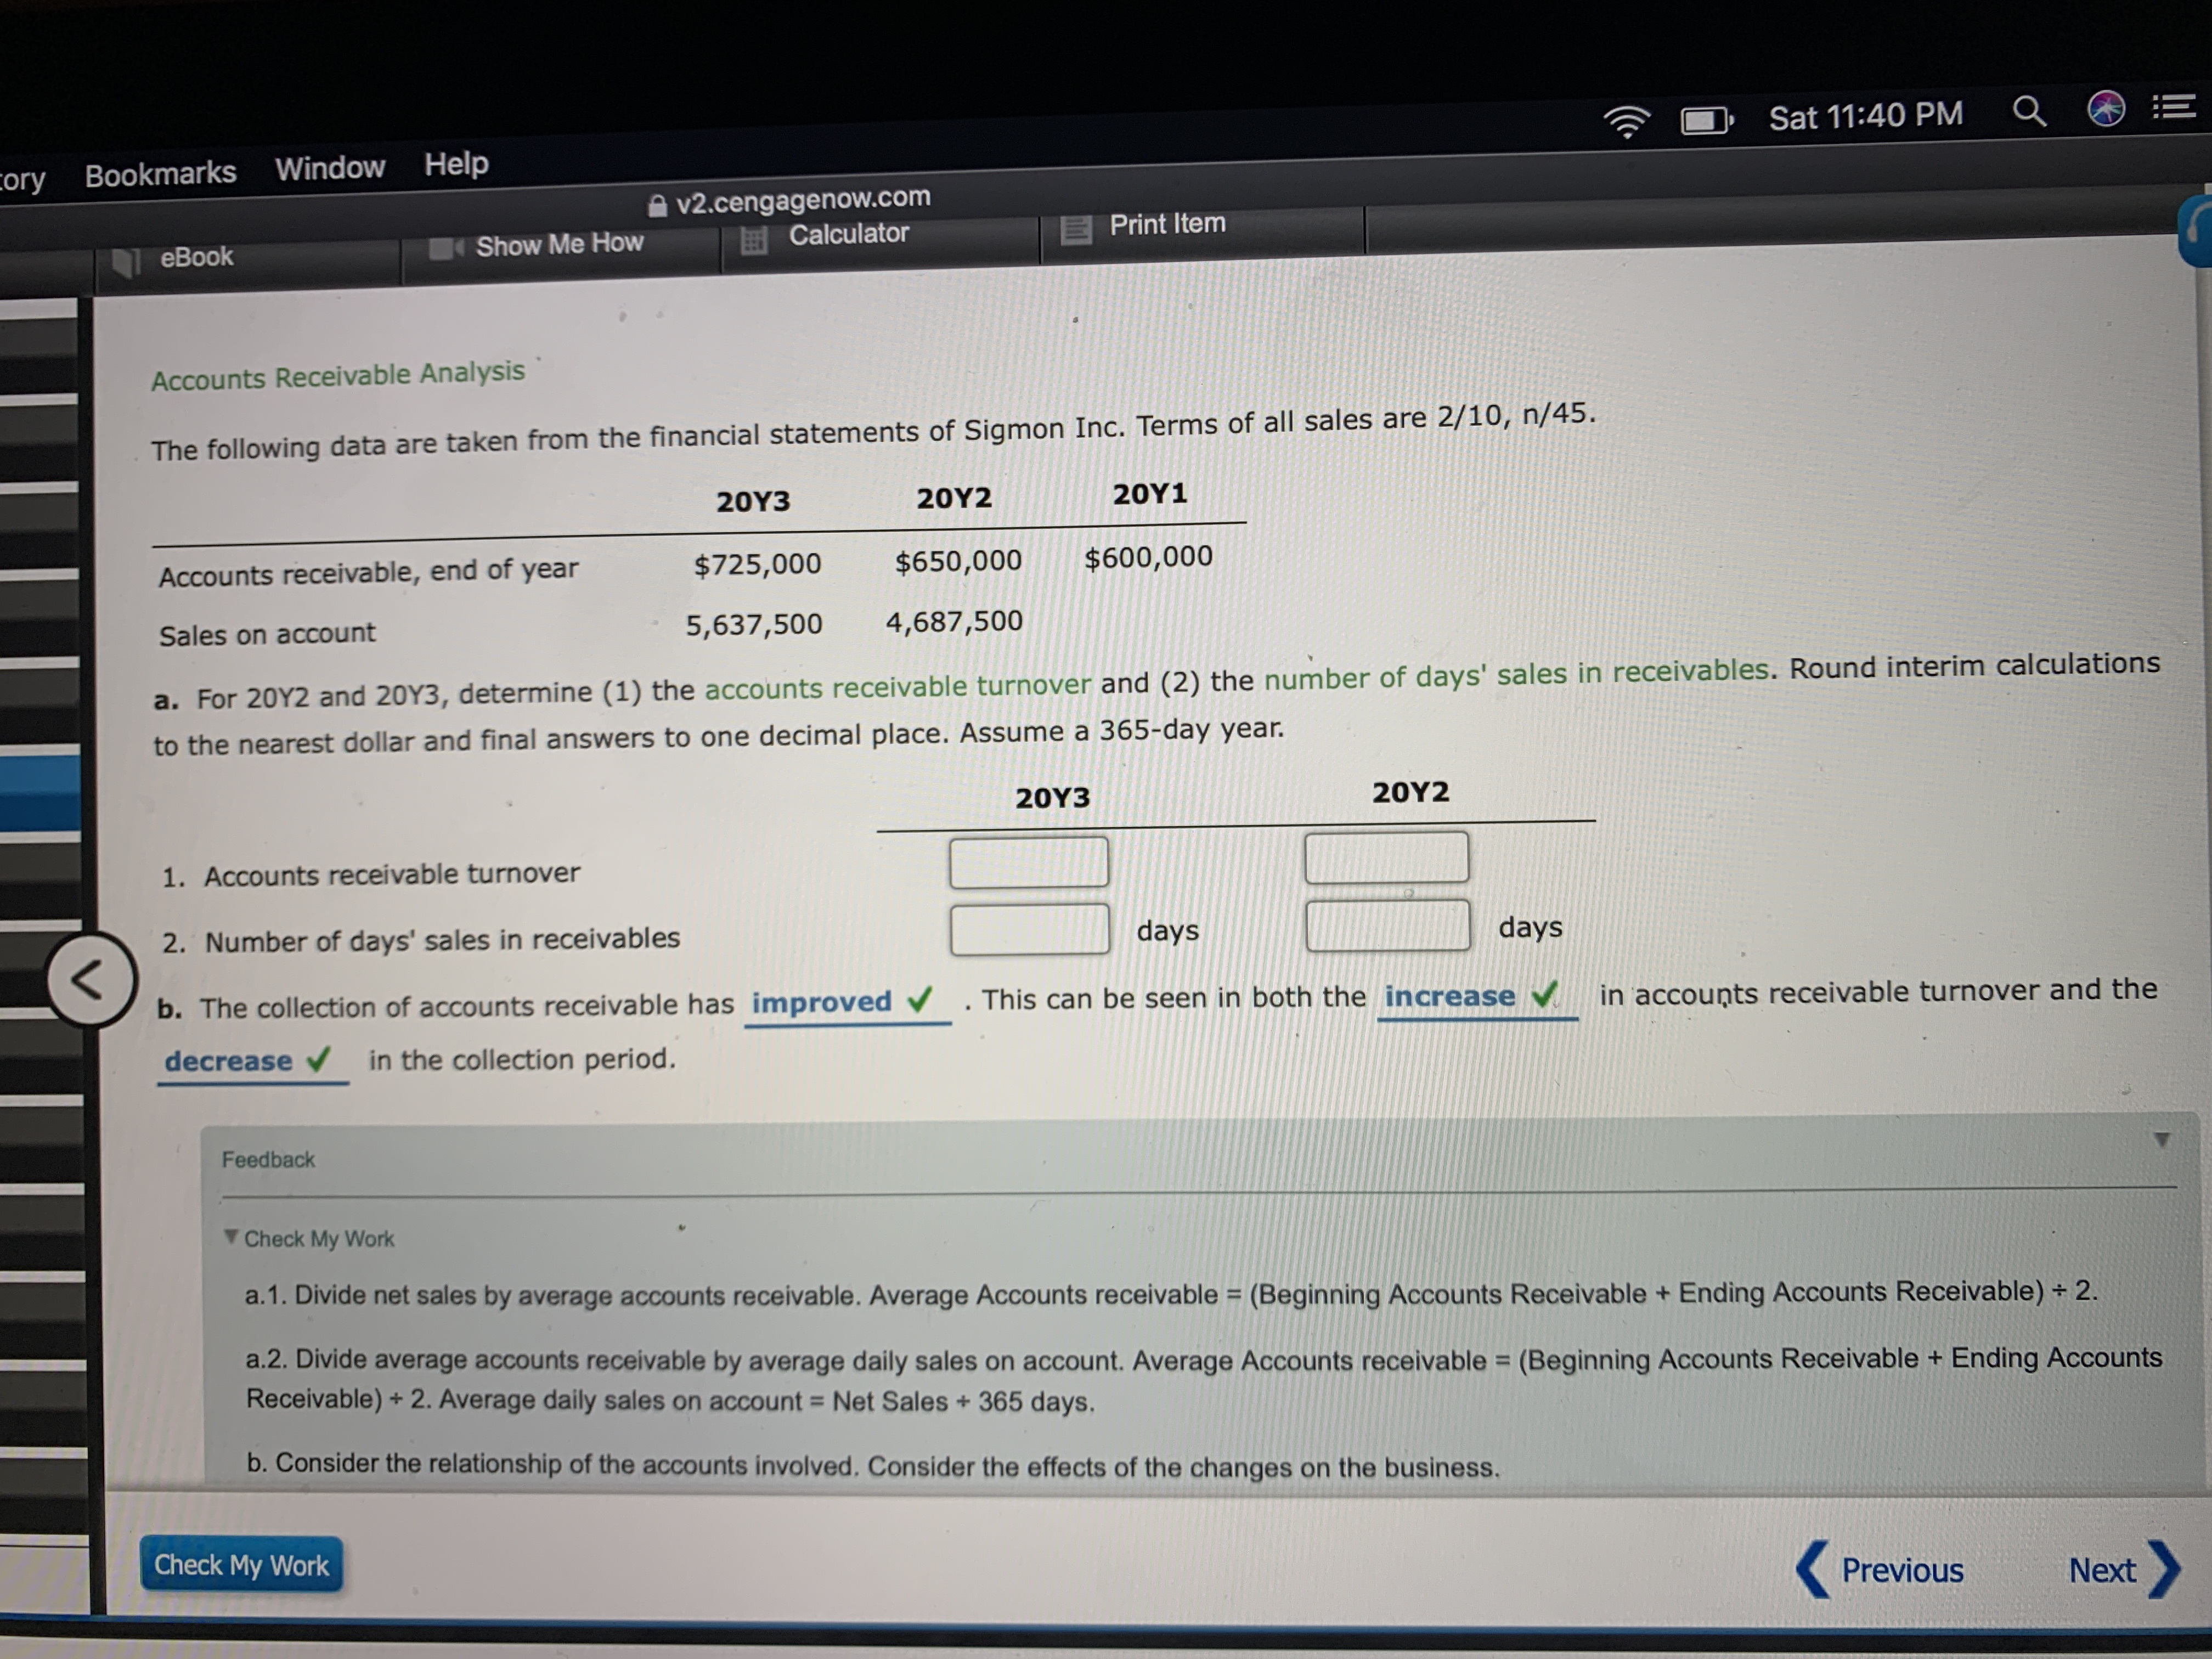 Sat 11:40 PM Help cory Bookmarks Window v2.cengagenow.com Calculator Print Item Show Me How eBook Accounts Receivable Analysis The following data are taken from the financial statements of Sigmon Inc. Terms of all sales are 2/10, n/45. 20Υ1 20Υ2 20Υ3 $600,000 $650,000 $725,000 Accounts receivable, end of year 4,687,500 5,637,500 Sales on account a. For 20Y2 and 20Y3, determine (1) the accounts receiva ble turnover and (2) the number of days' sales in receivables. Round interim calculations to the nearest dollar and final answers to one decimal place. Assume a 365-day year. 20Υ2 20Υ3 1. Accounts receivable turnover days days 2. Number of days' sales in receivables < b. The collection of accounts receivable has improved in accounts receivable turnover and the . This can be seen in both the increase in the collection period. decrease Feedback Check My Work a.1. Divide net sales by average accounts receivable. Average Accounts receivable (Beginning Accounts Receivable + Ending Accounts Receivable) + 2. a.2. Divide average accounts receivable by average daily sales on account. Average ACCounts receivable = (Beginning Accounts Receivable + Ending Accounts Receivable)+ 2. Average daily sales on account Net Sales+365 days. b.Consider the relationship of the accounts involved. Consider the effects of the changes on the business. Check My Work Previous Next